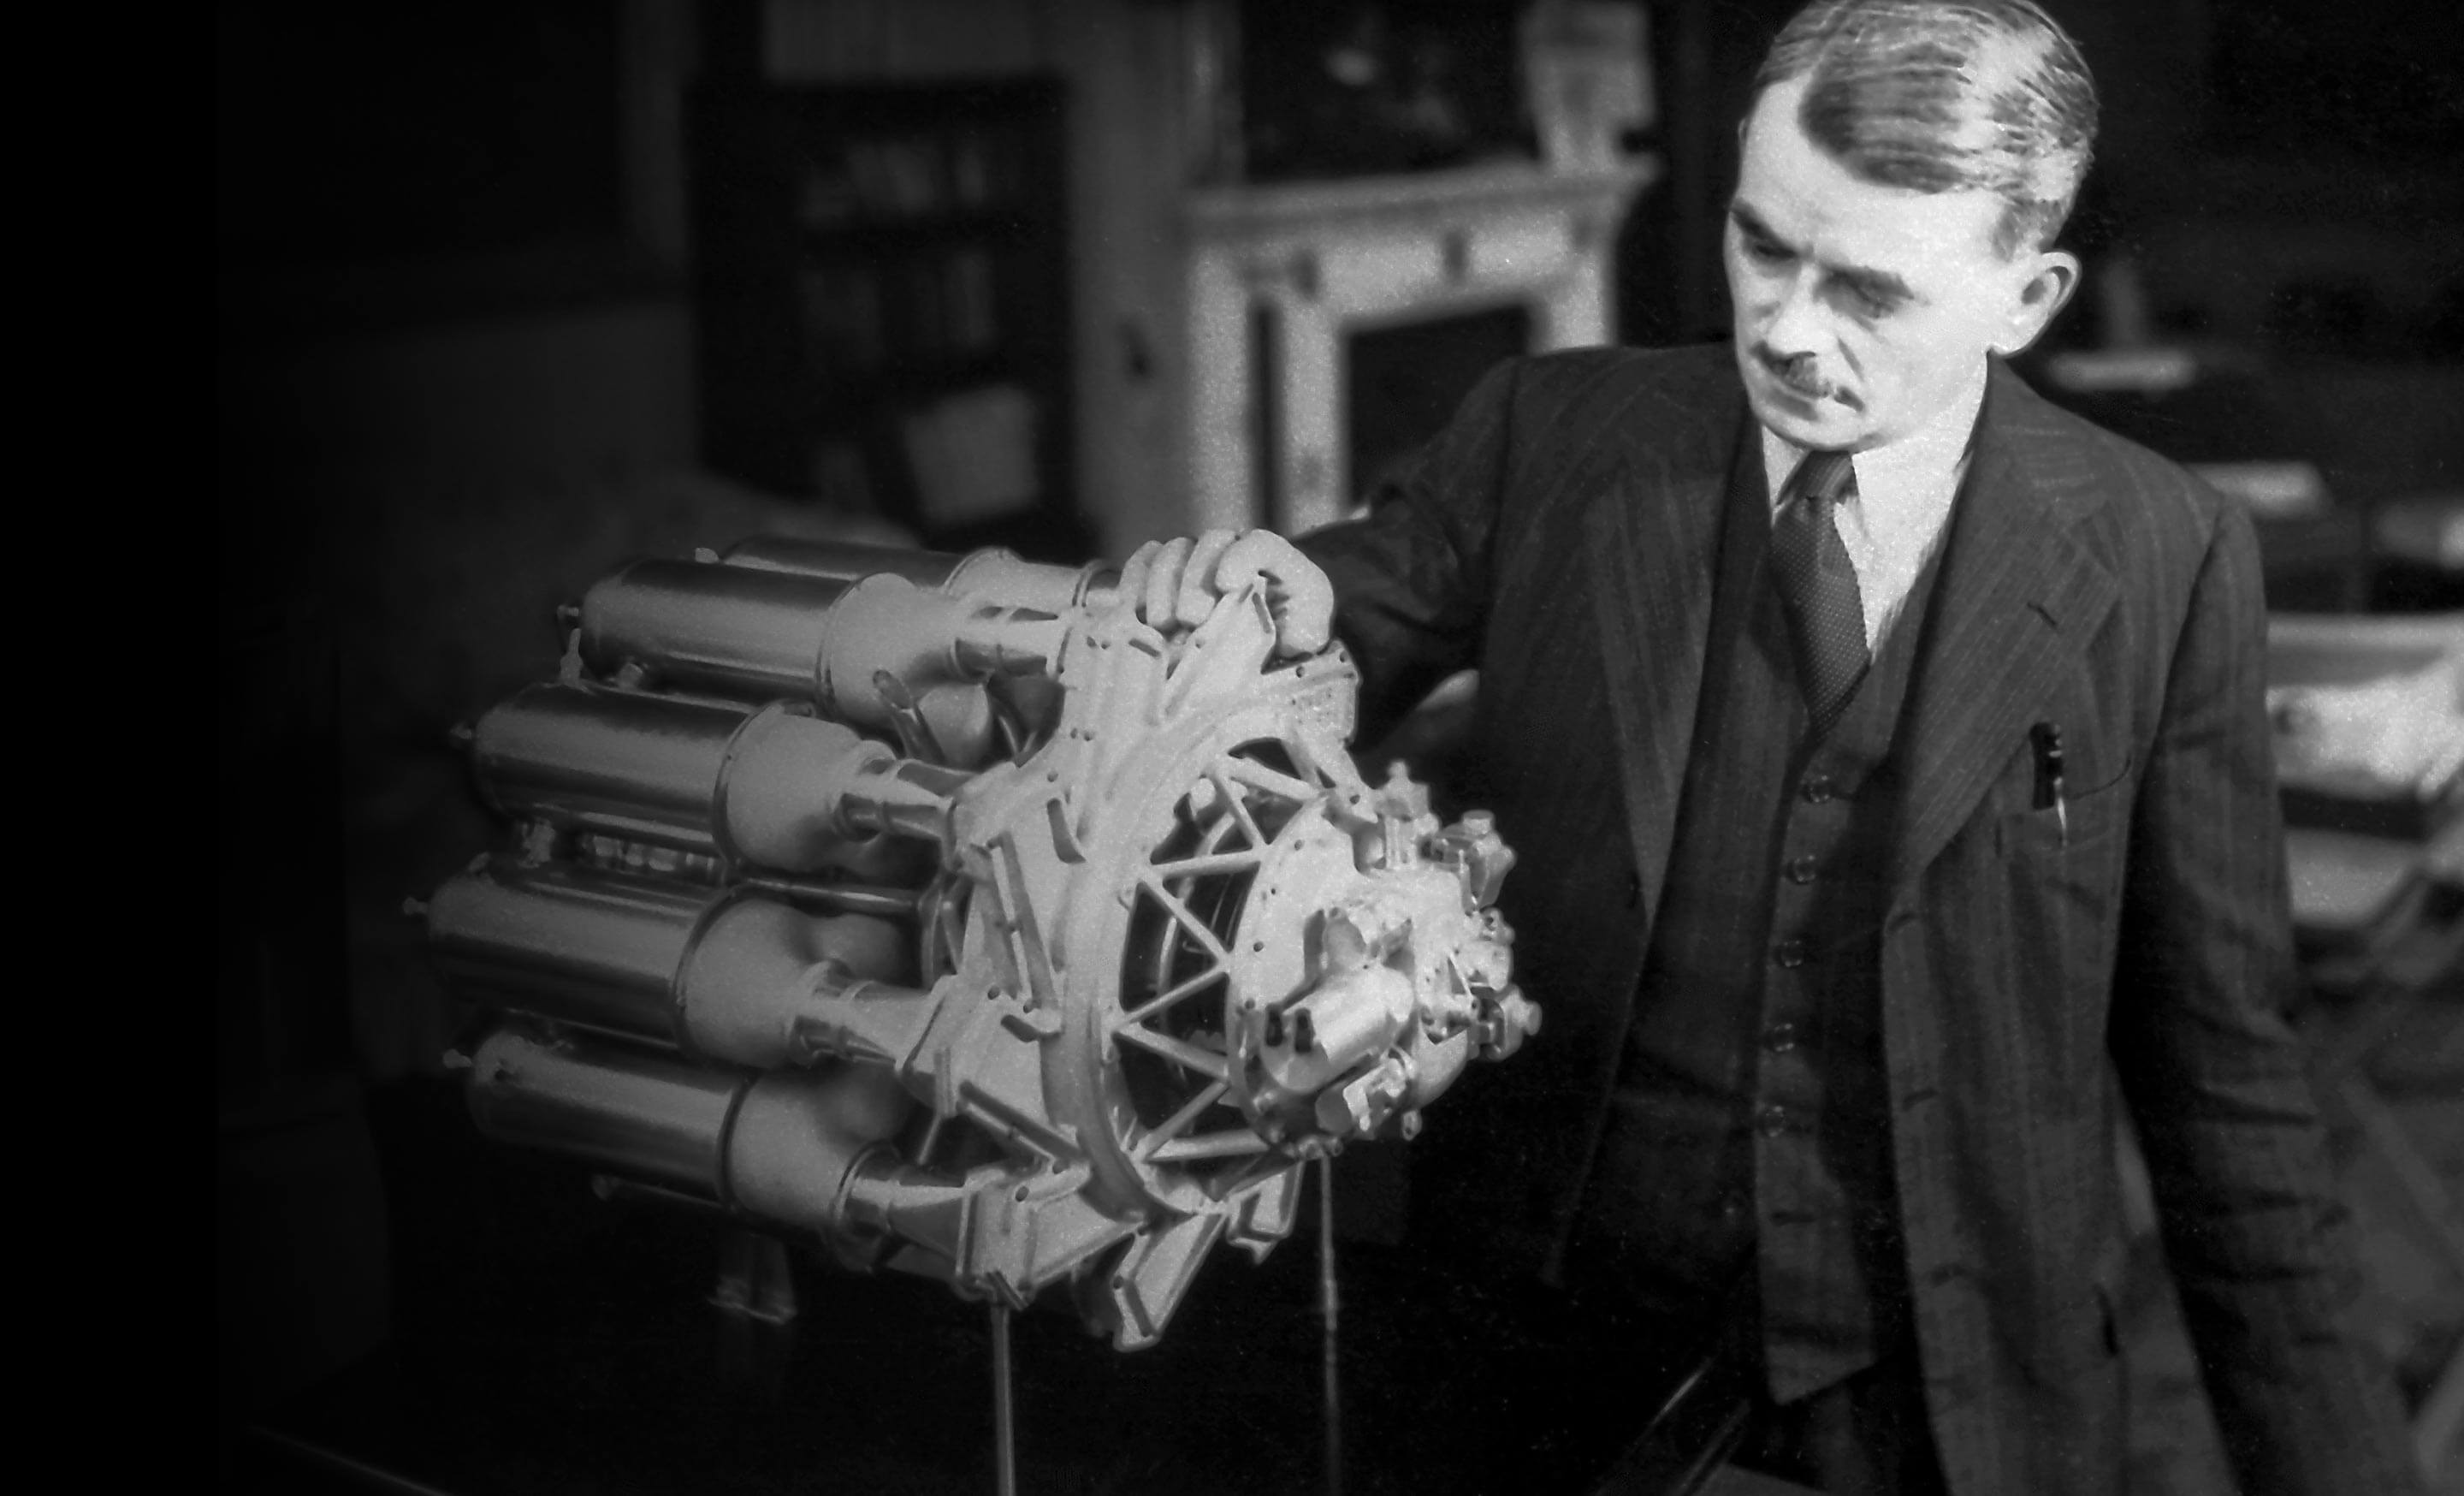 Sir Frank Whittle with a jet engine